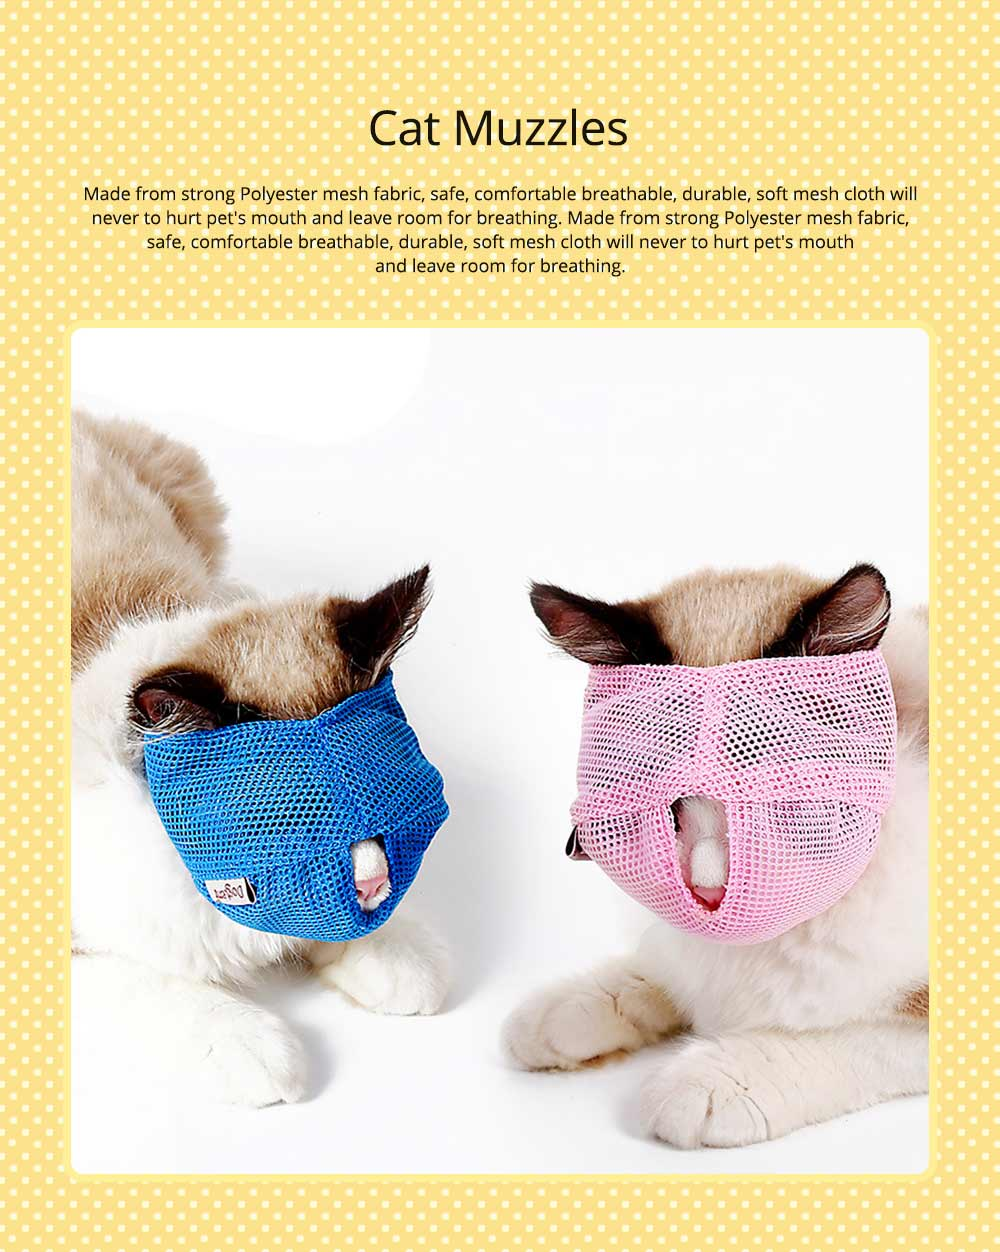 Cat Muzzles Cat Nylon Face Mask Pet Grooming Tools for Preventing scratches and Anti-biting 0